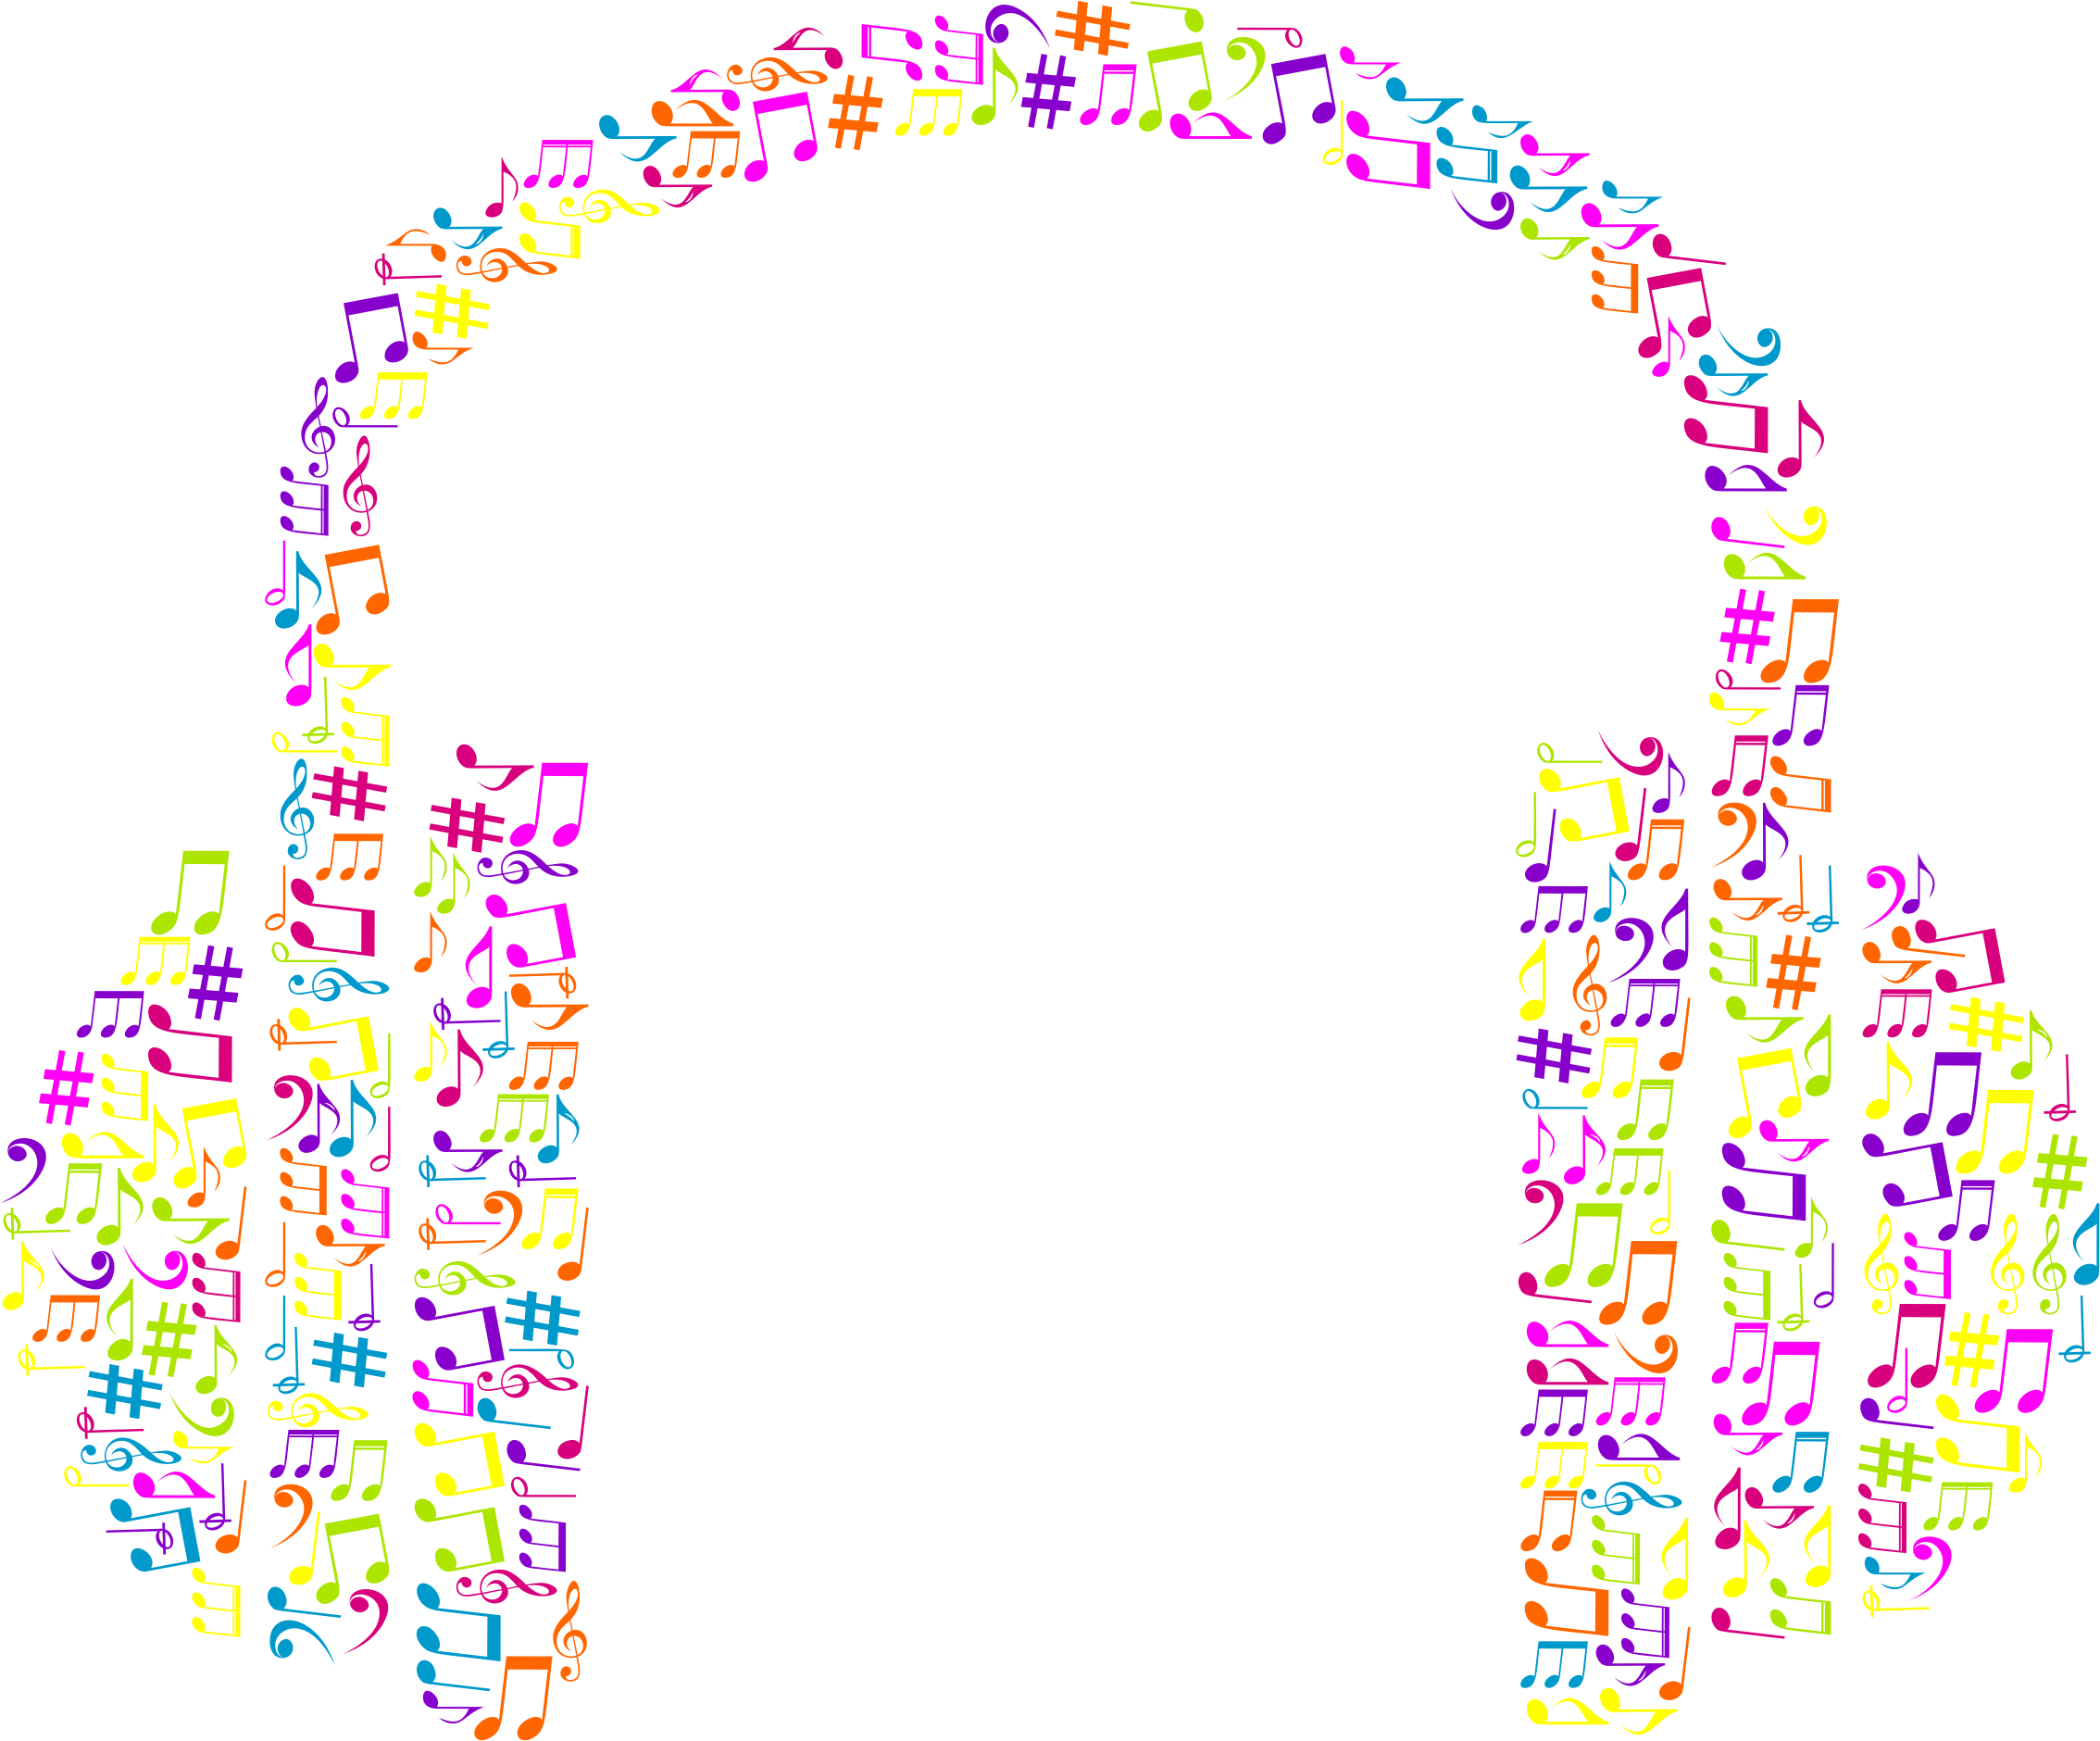 Music notes background png. Clipart musical headphone no